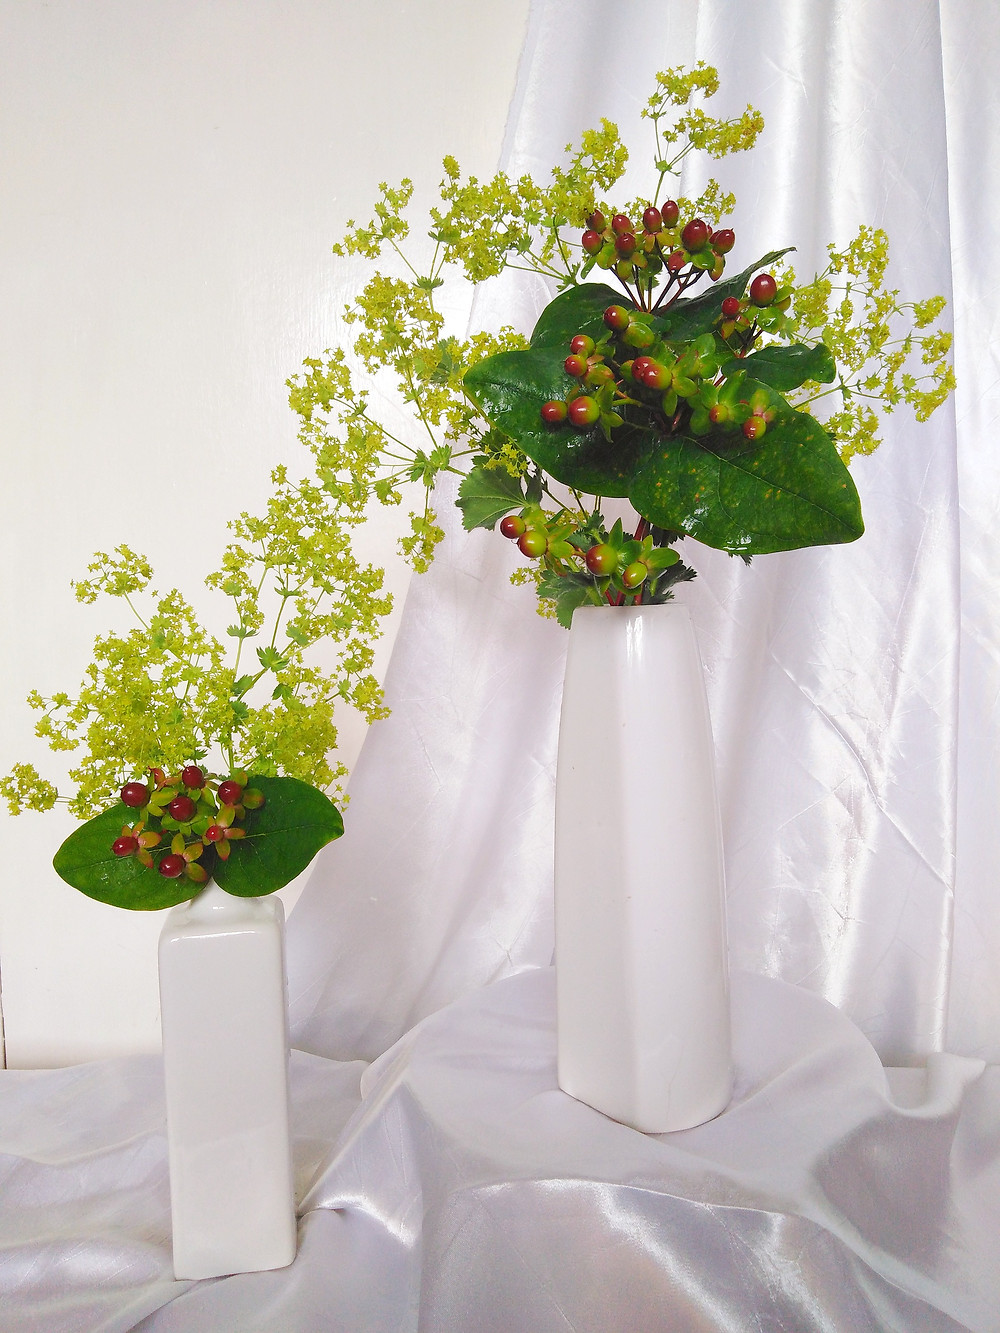 Lady's Mantle/Alchemilla and Hypericum Berries by PC Creations Leeds